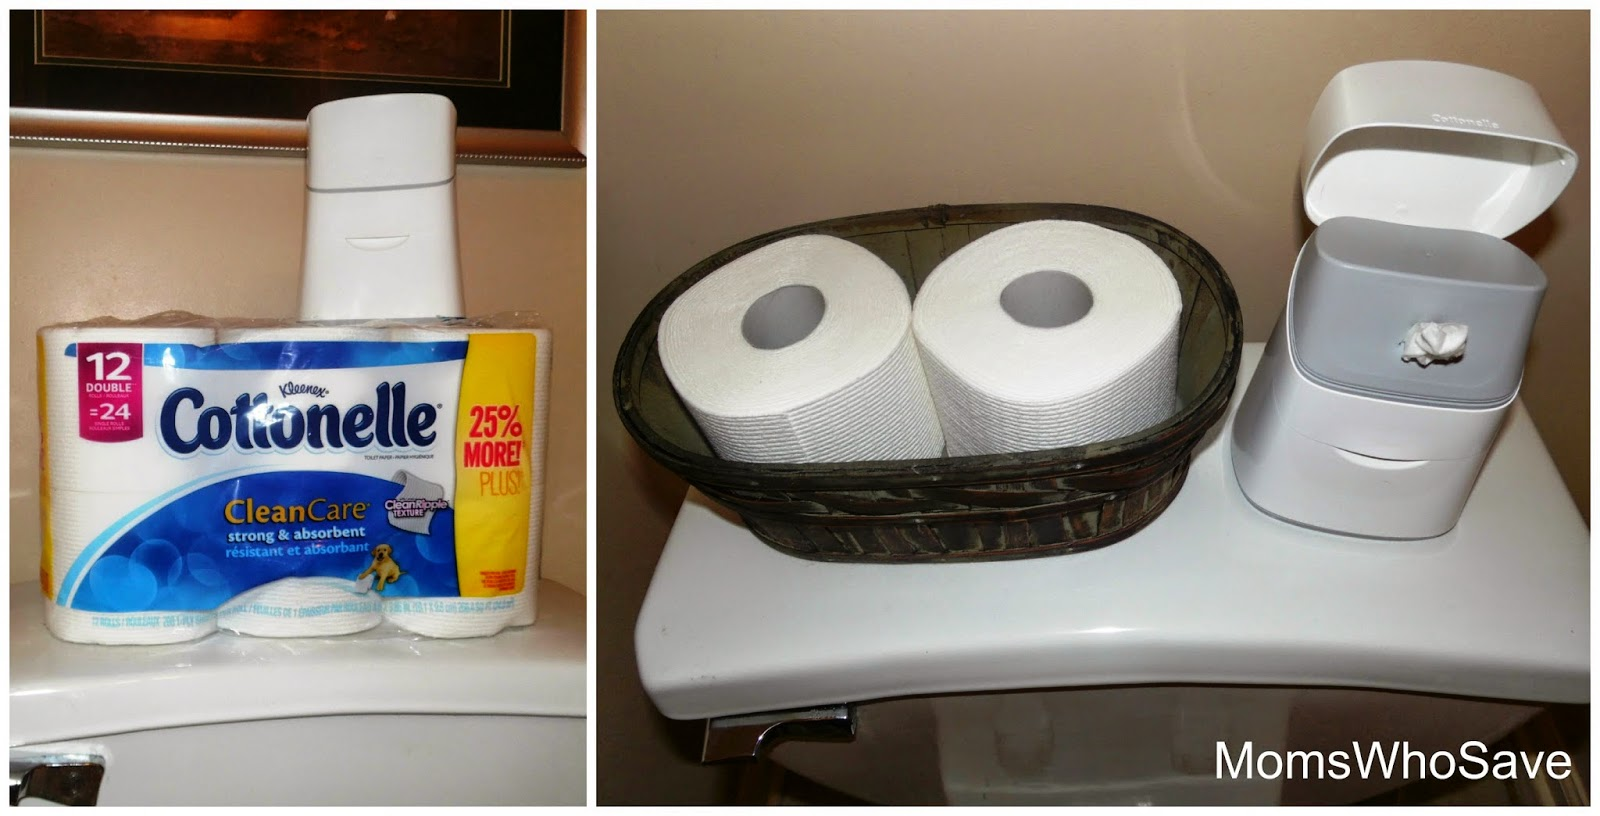 Grab Your Cottonelle Coupon & Try a Cleaner, Fresher Bathroom Routine! #LetsTalkBums